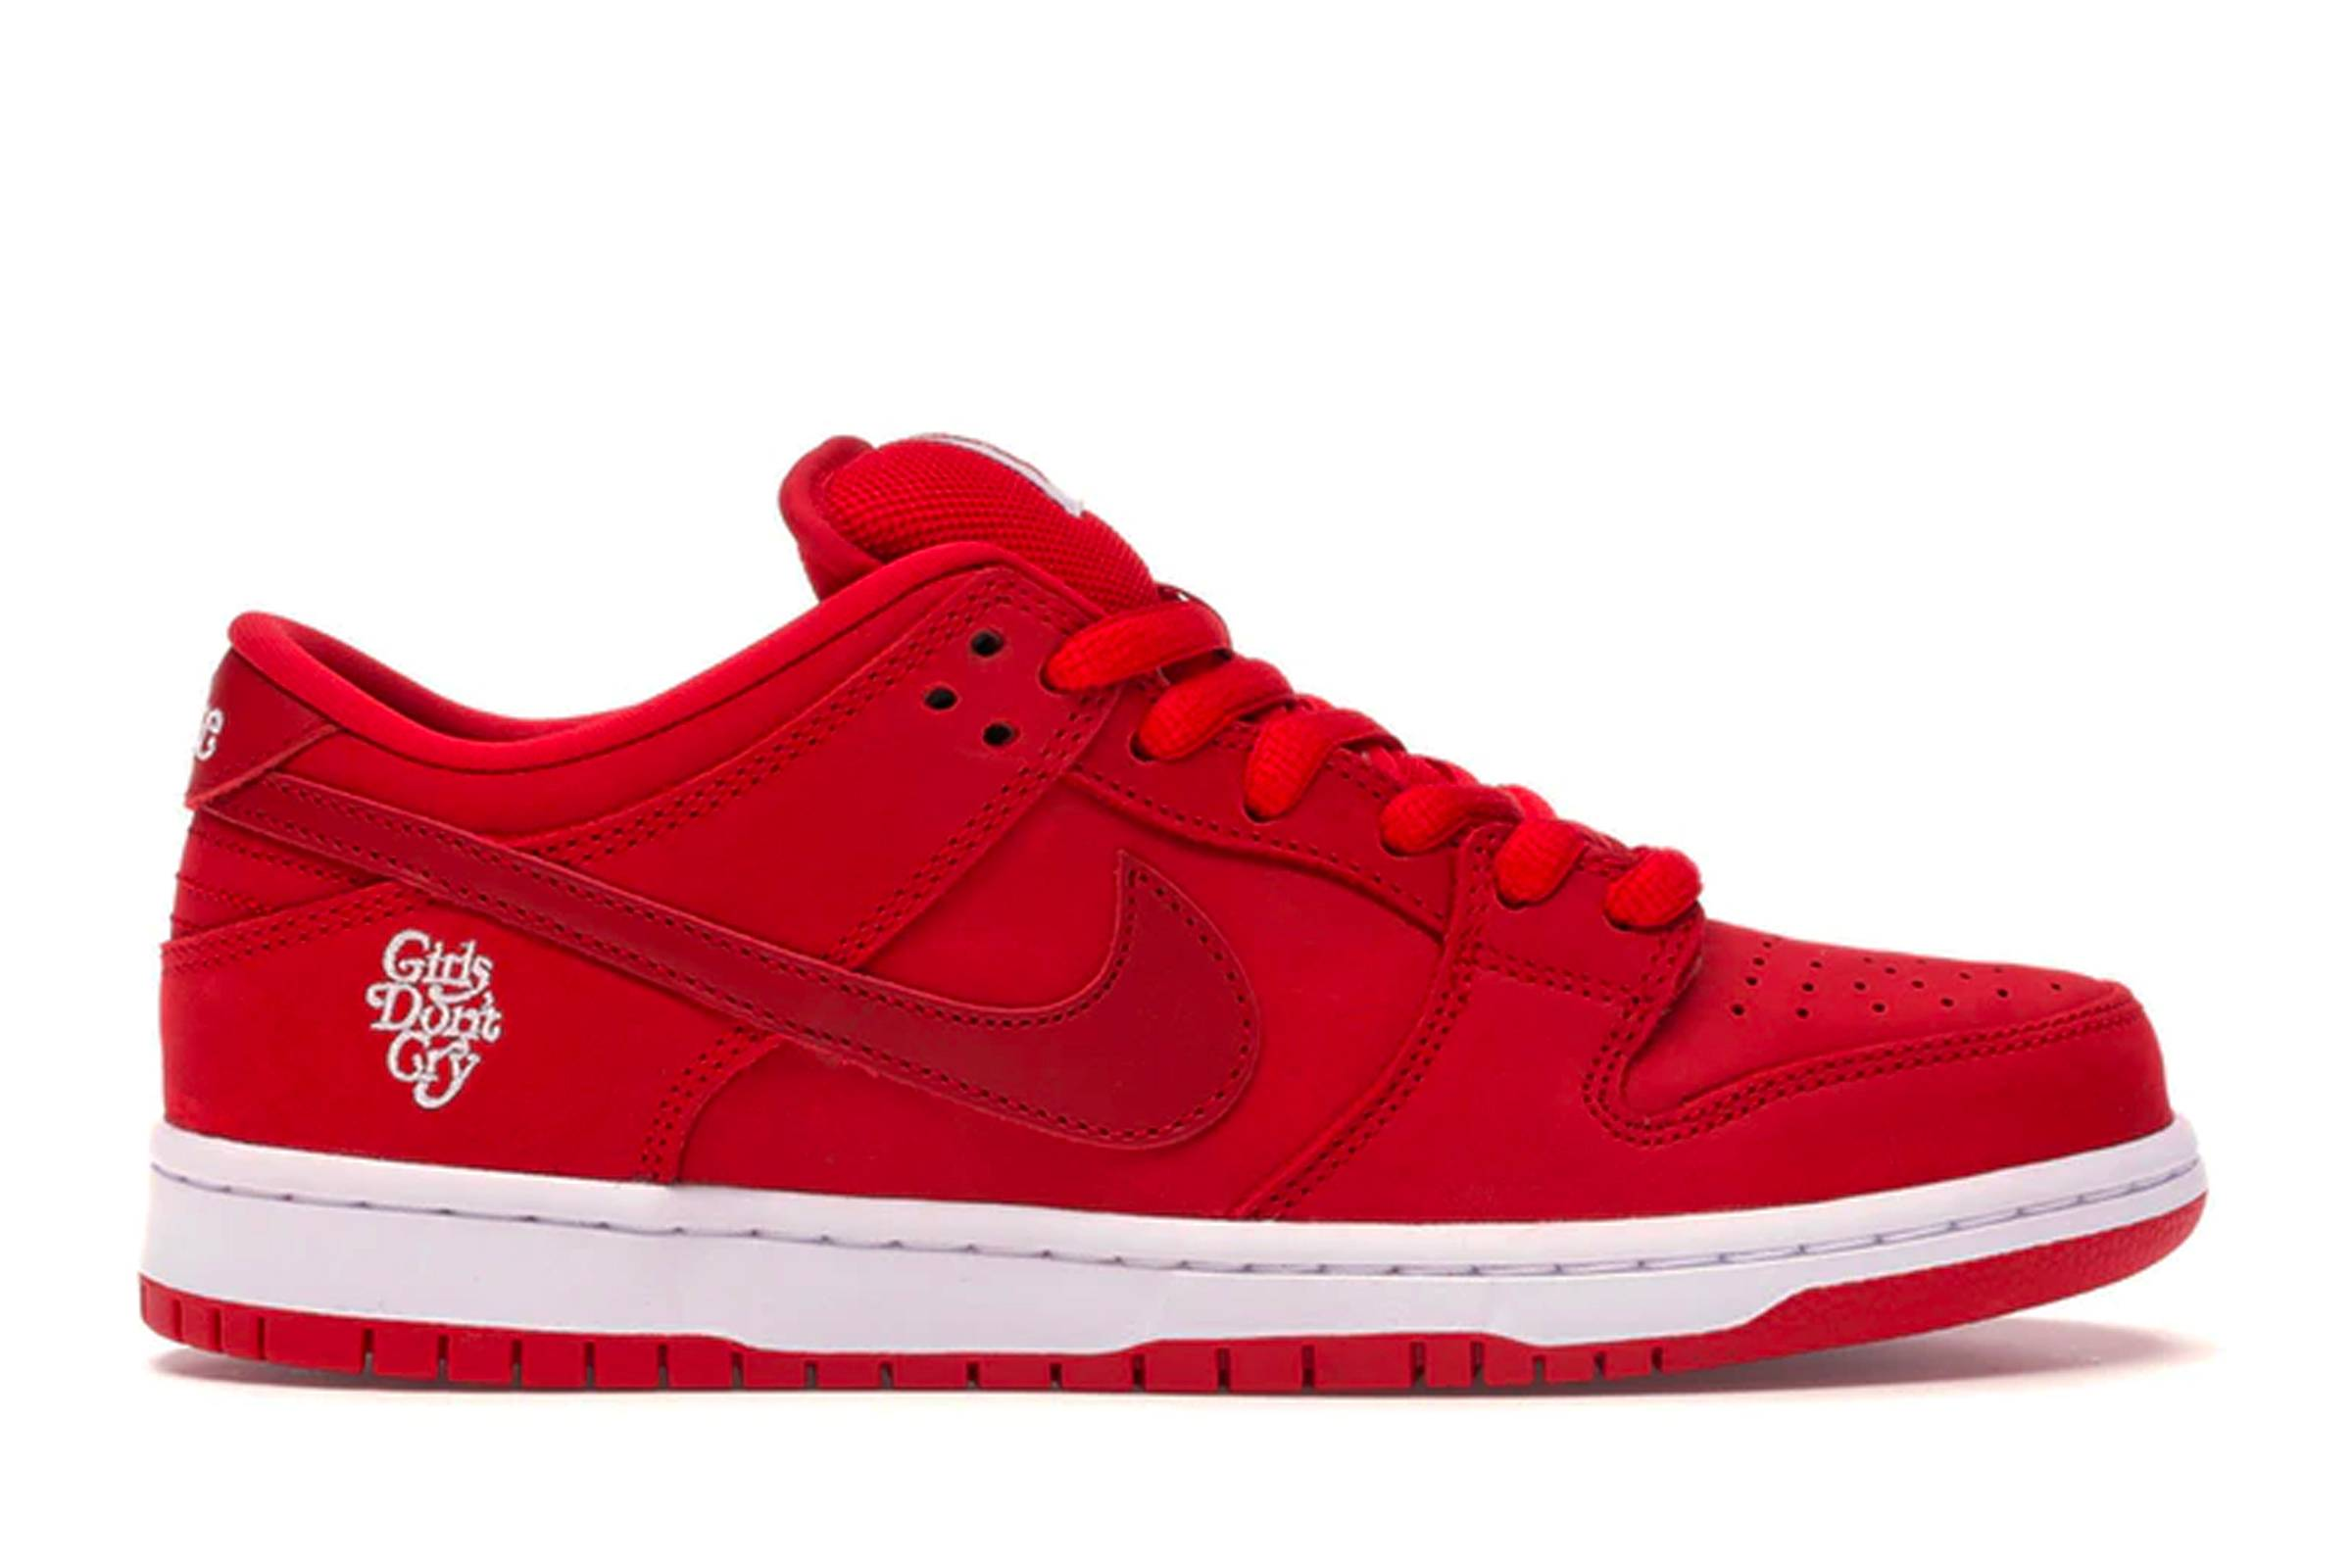 Girls Don't Cry x Nike SB Dunk